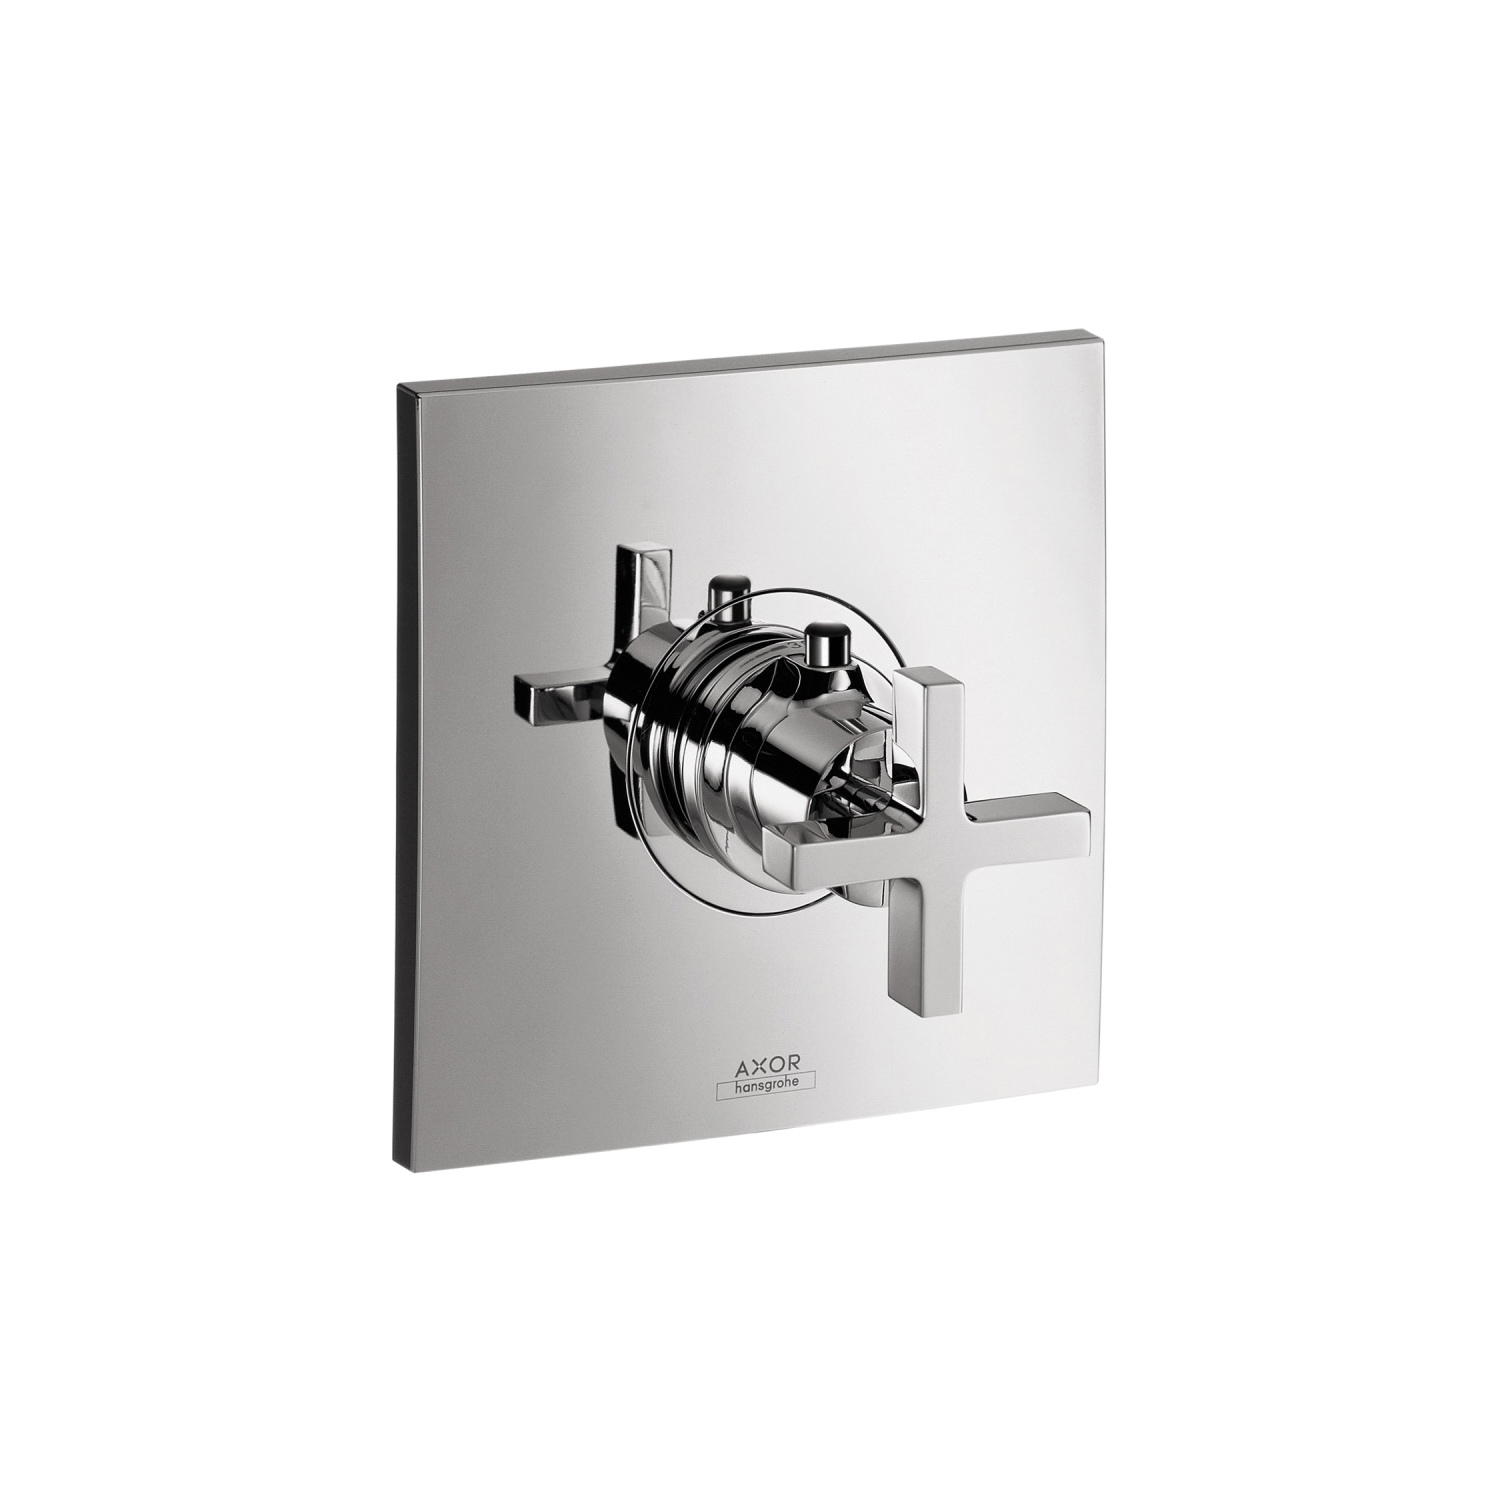 Hansgrohe 39716001 Axor Citterio Thermostatic Trim, Hand Shower Yes/No: No, Chrome Plated